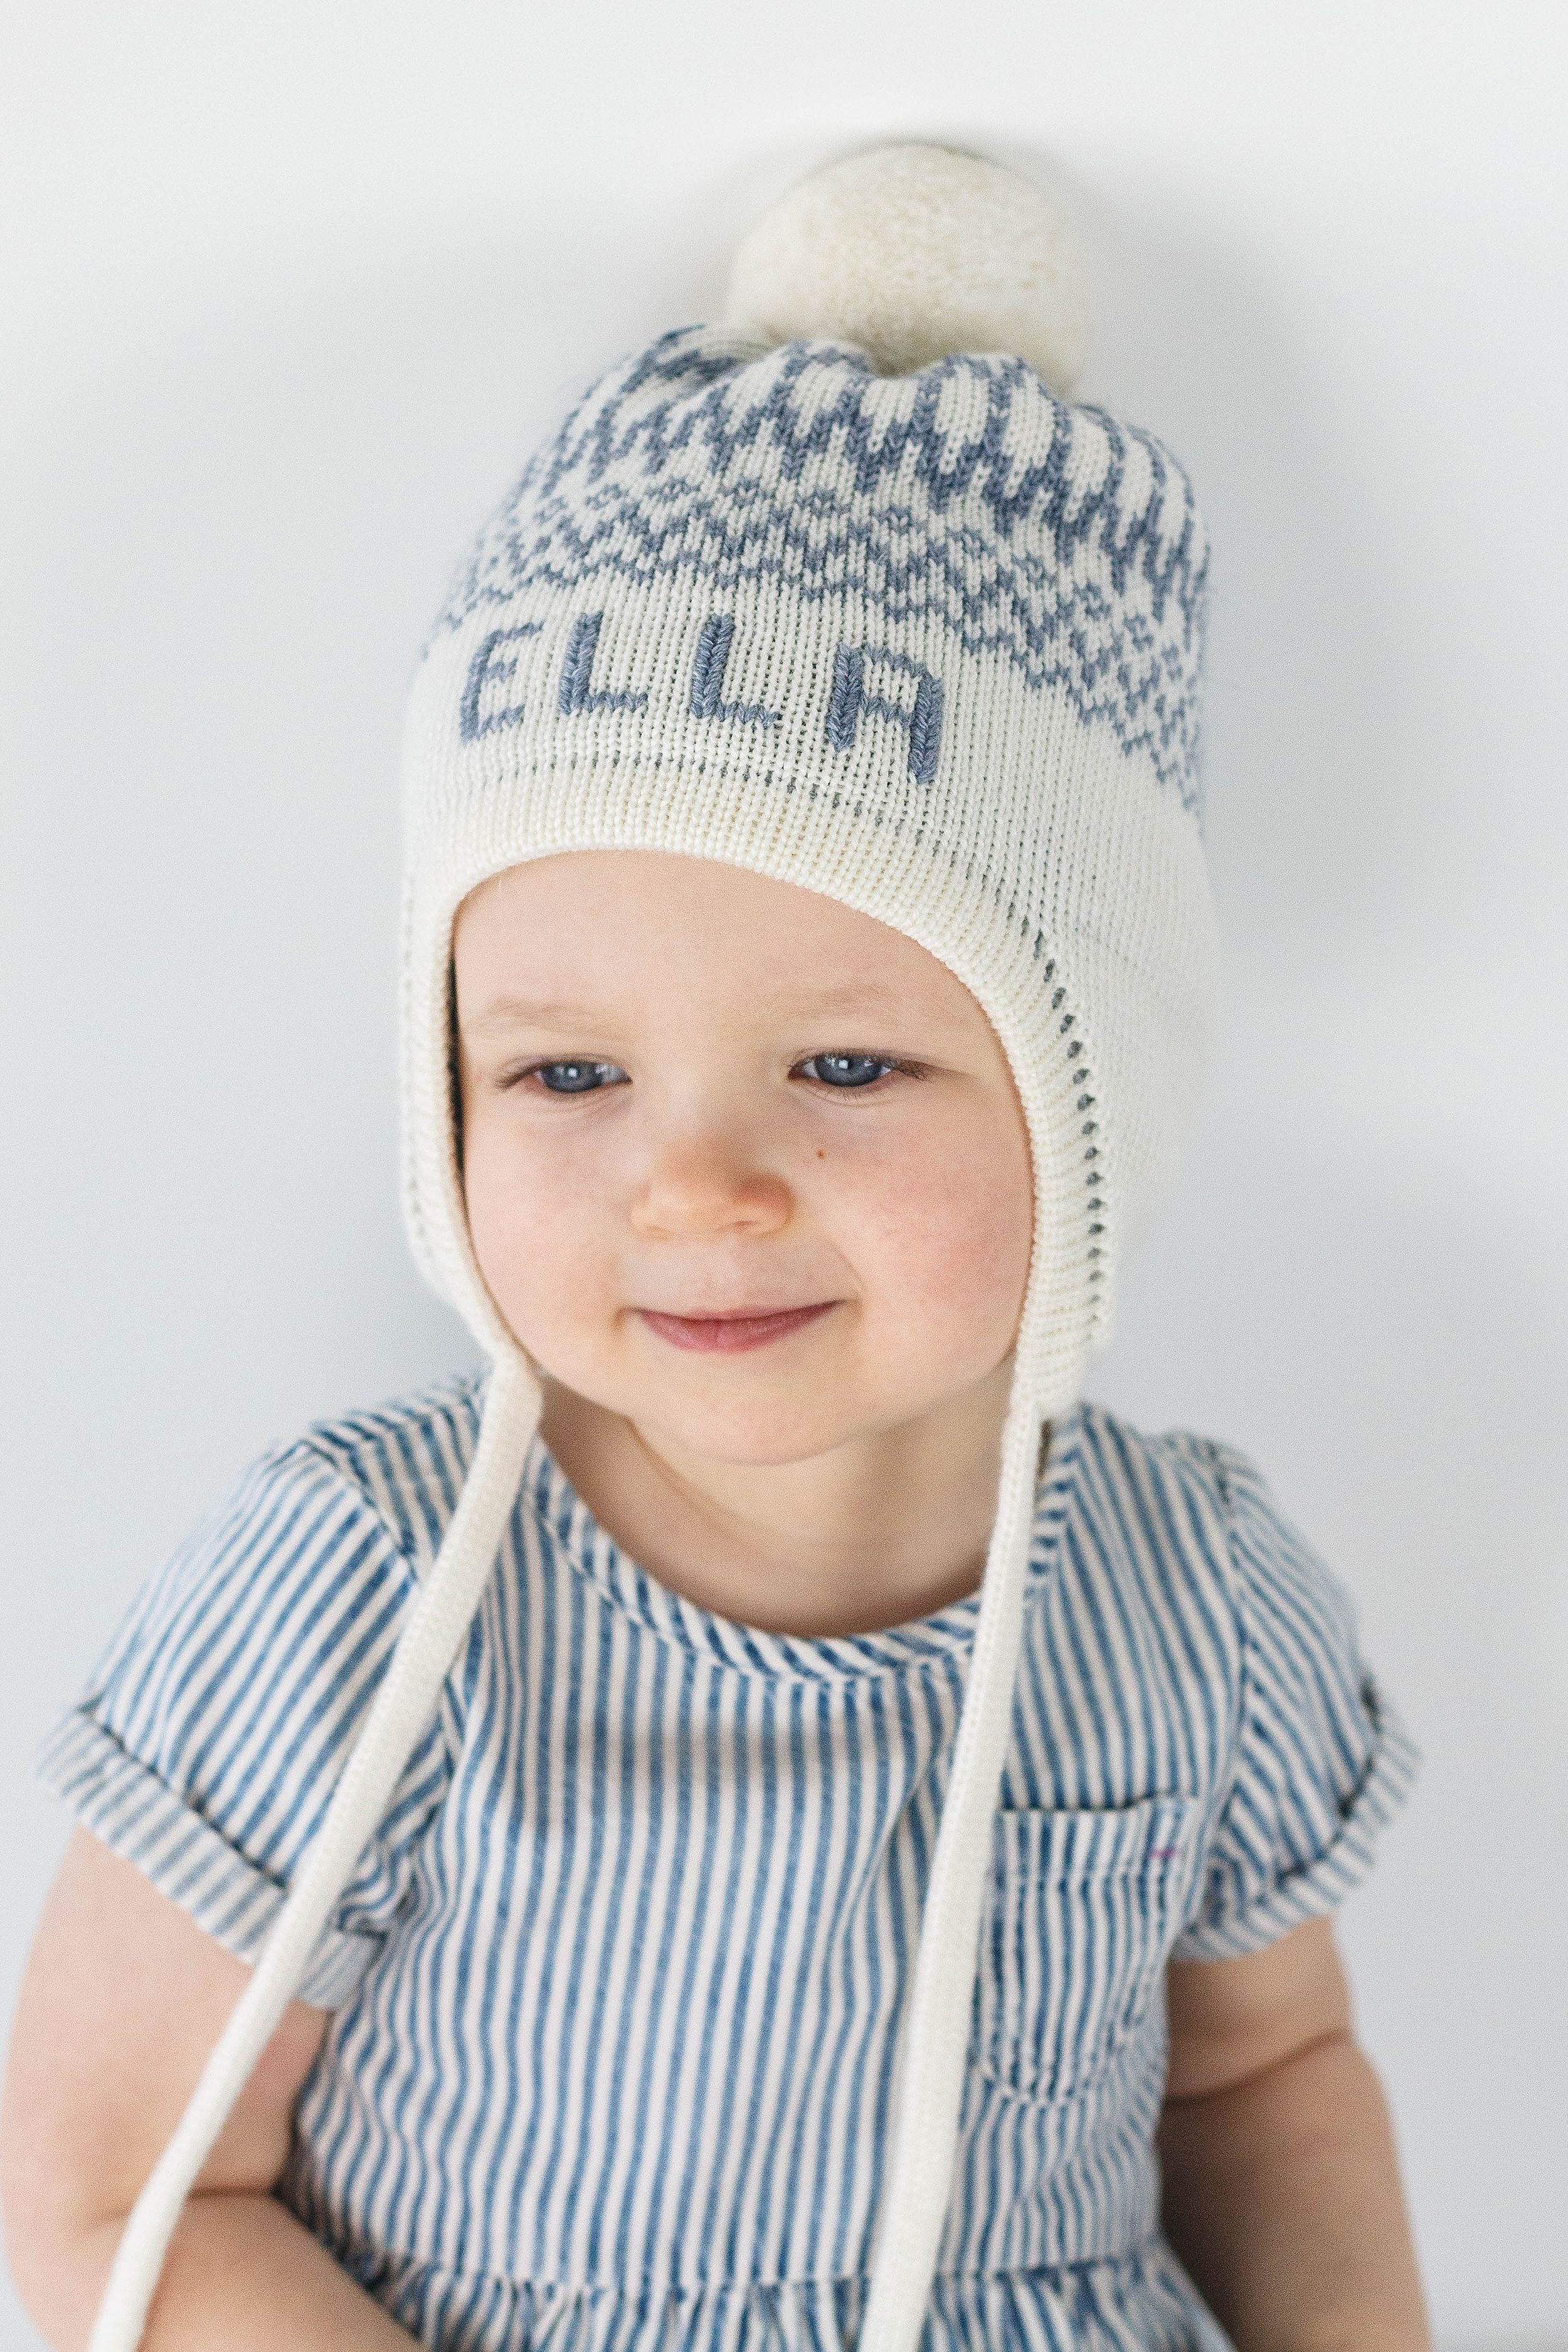 Personalized Ear Flap Knit Hat For Kids With Name Custom Etsy Knit Hats For Kids Knitted Hats Kids Winter Hats